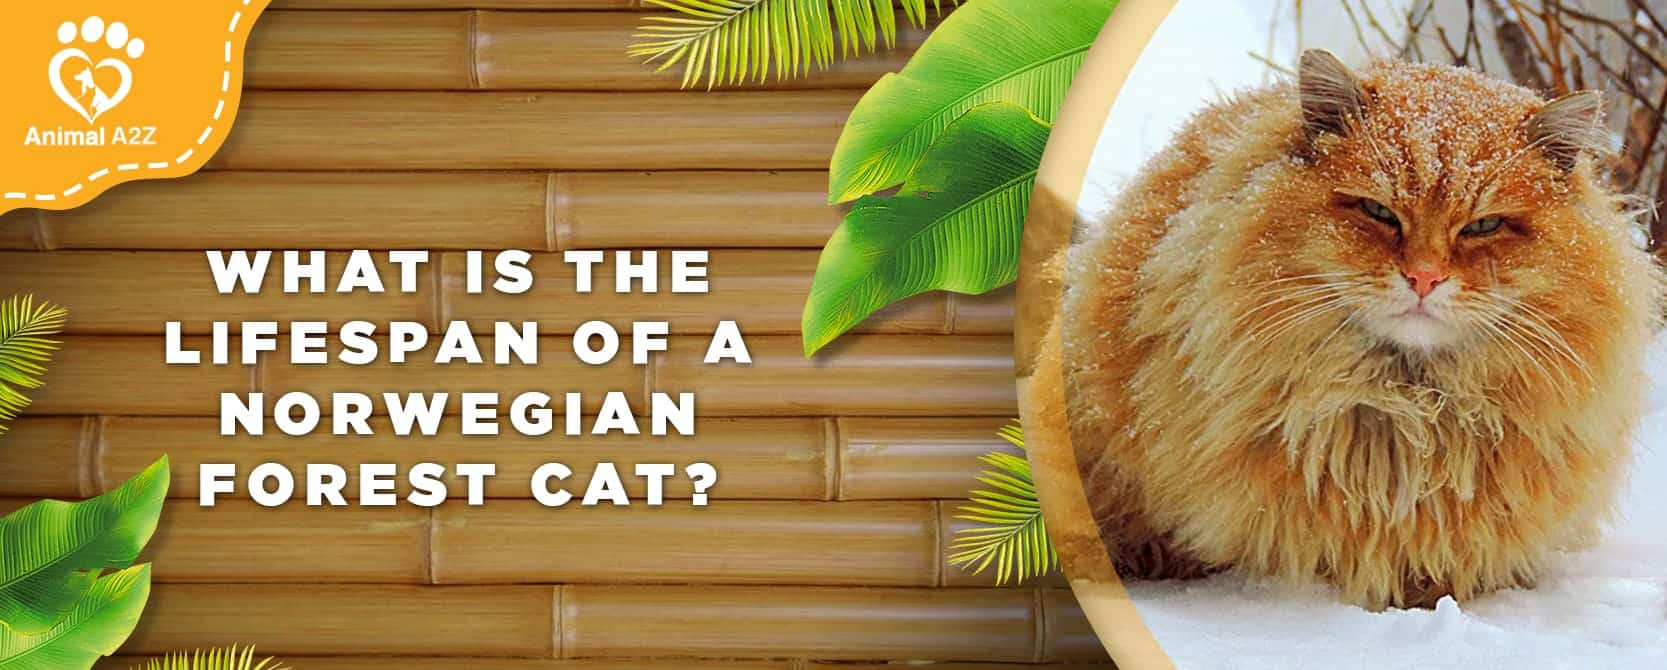 What is the lifespan of a Norwegian Forest Cat?